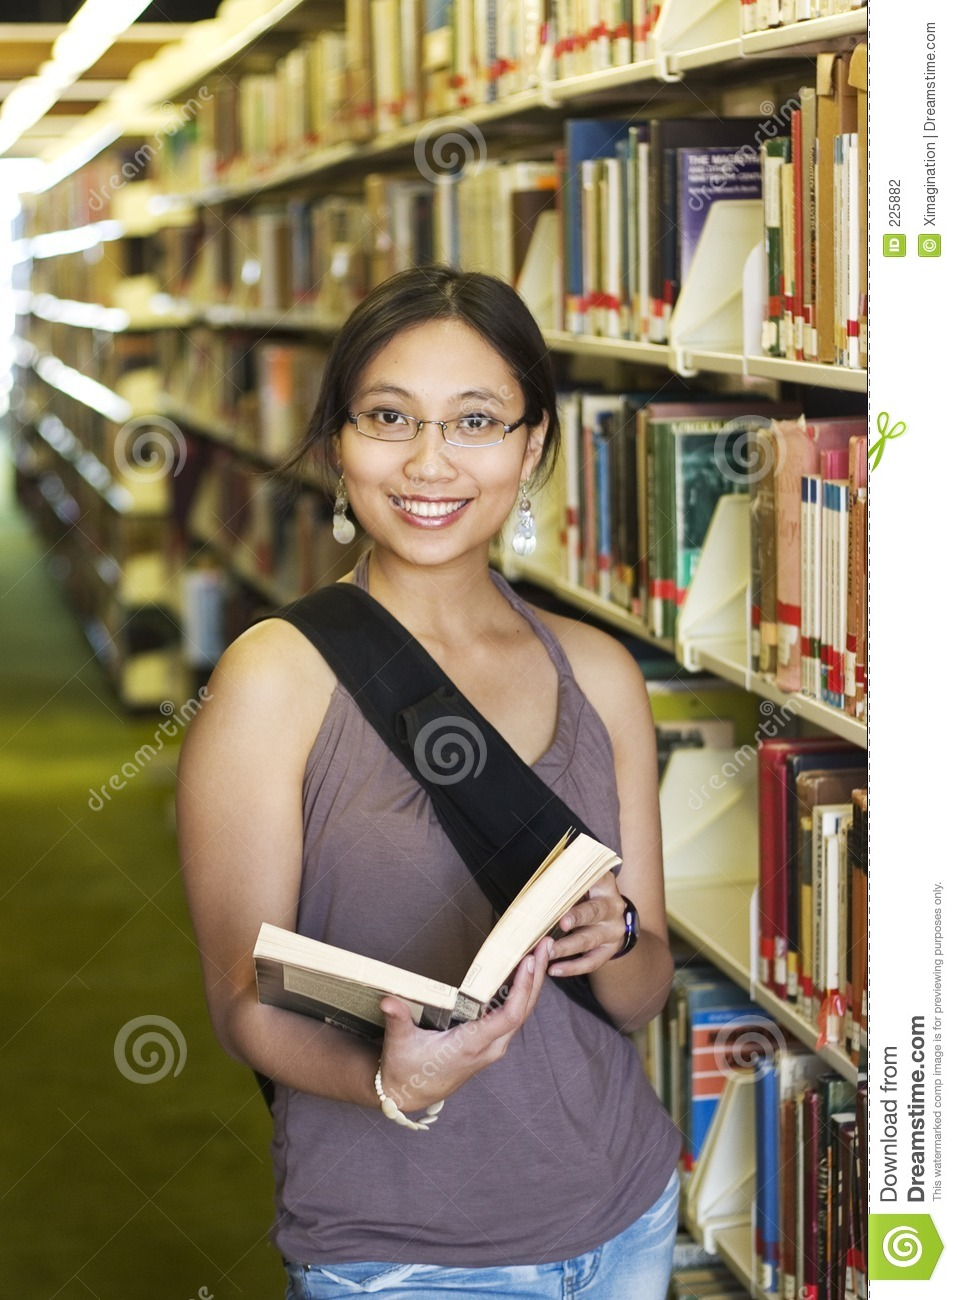 College Student at a Library